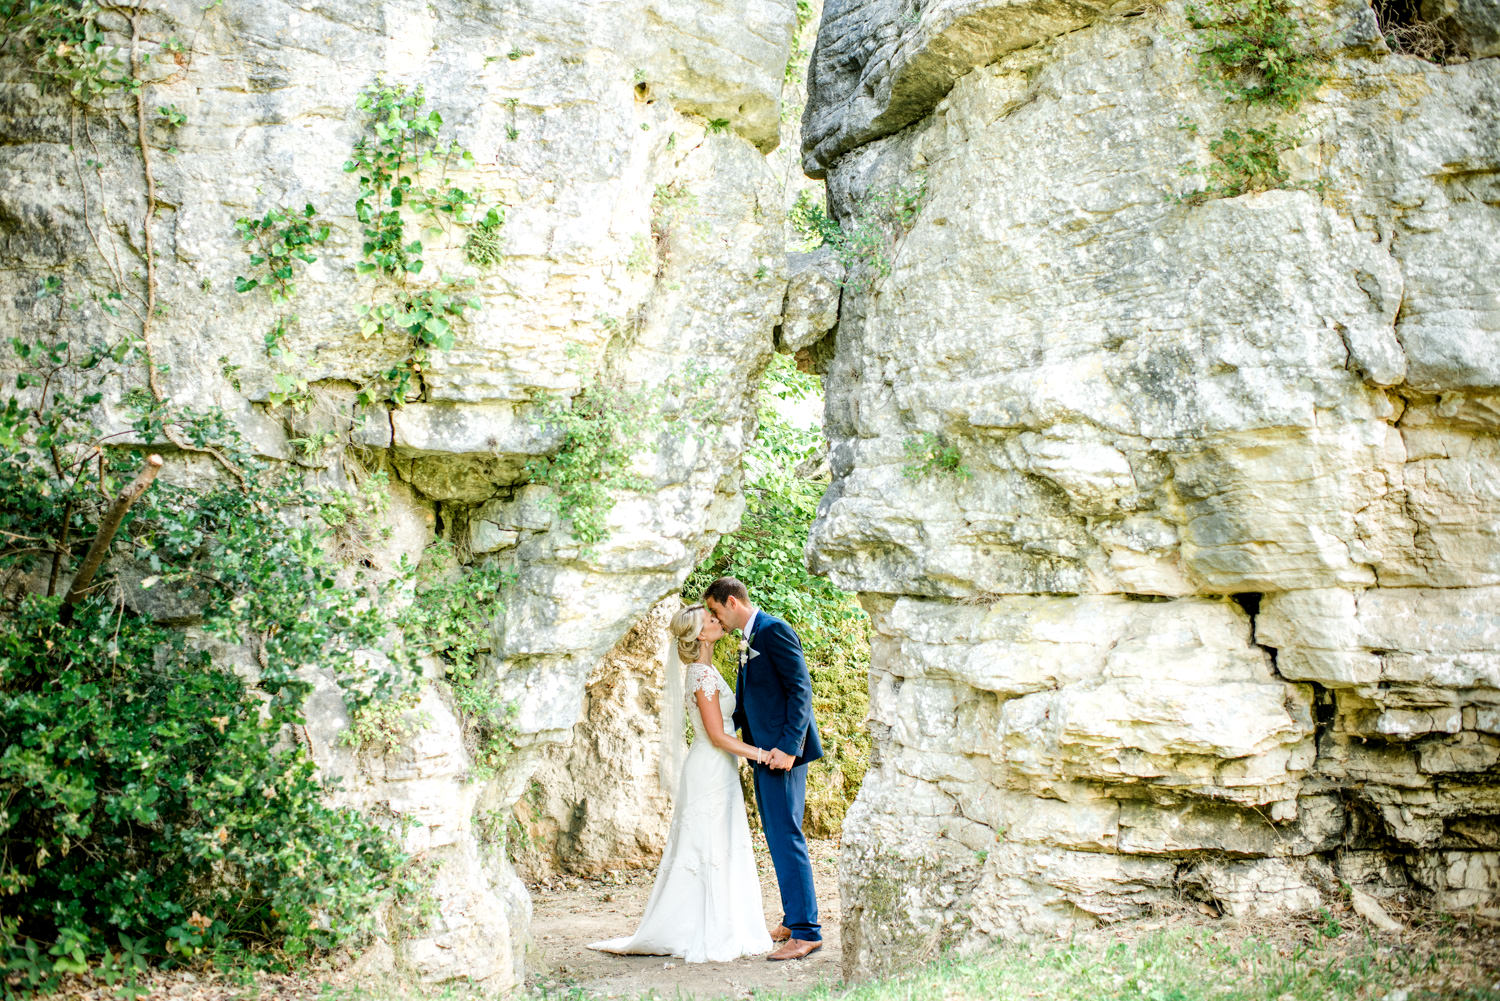 rockface at wedding ceremony in the chapel of Chateau de Lacoste wedding venue